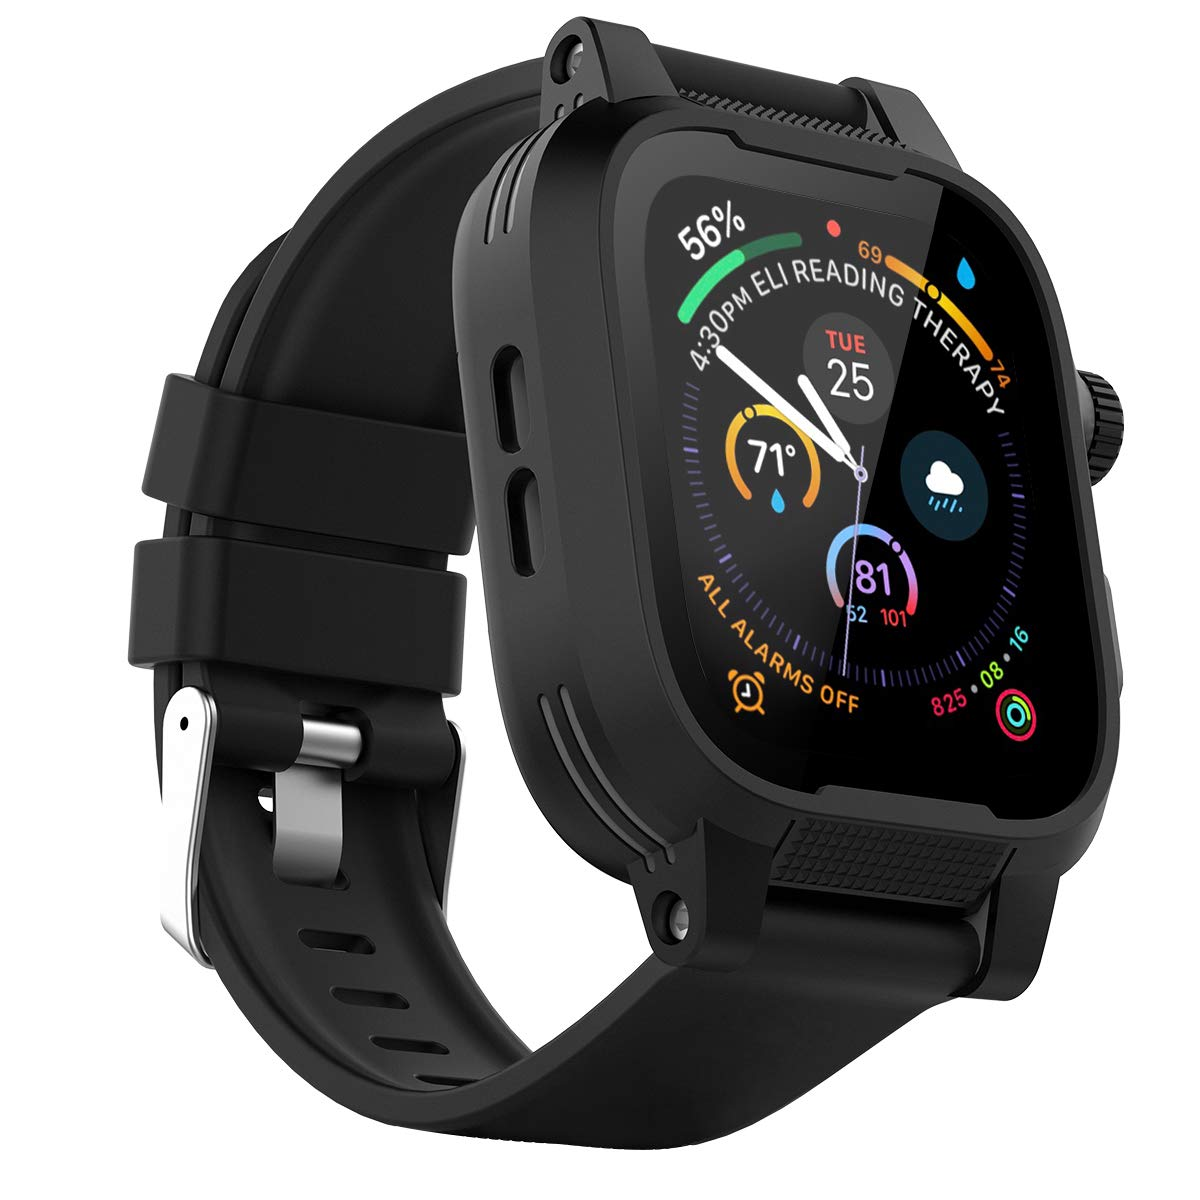 IP68 Waterproof Watch Case for 42mm Apple Watch Series 3 & 2 Heavy Duty Shockproof Impact Resistant iWatch Full Sealed Case with Premium Soft Silicone Replaceable Watch Band by Shellbox